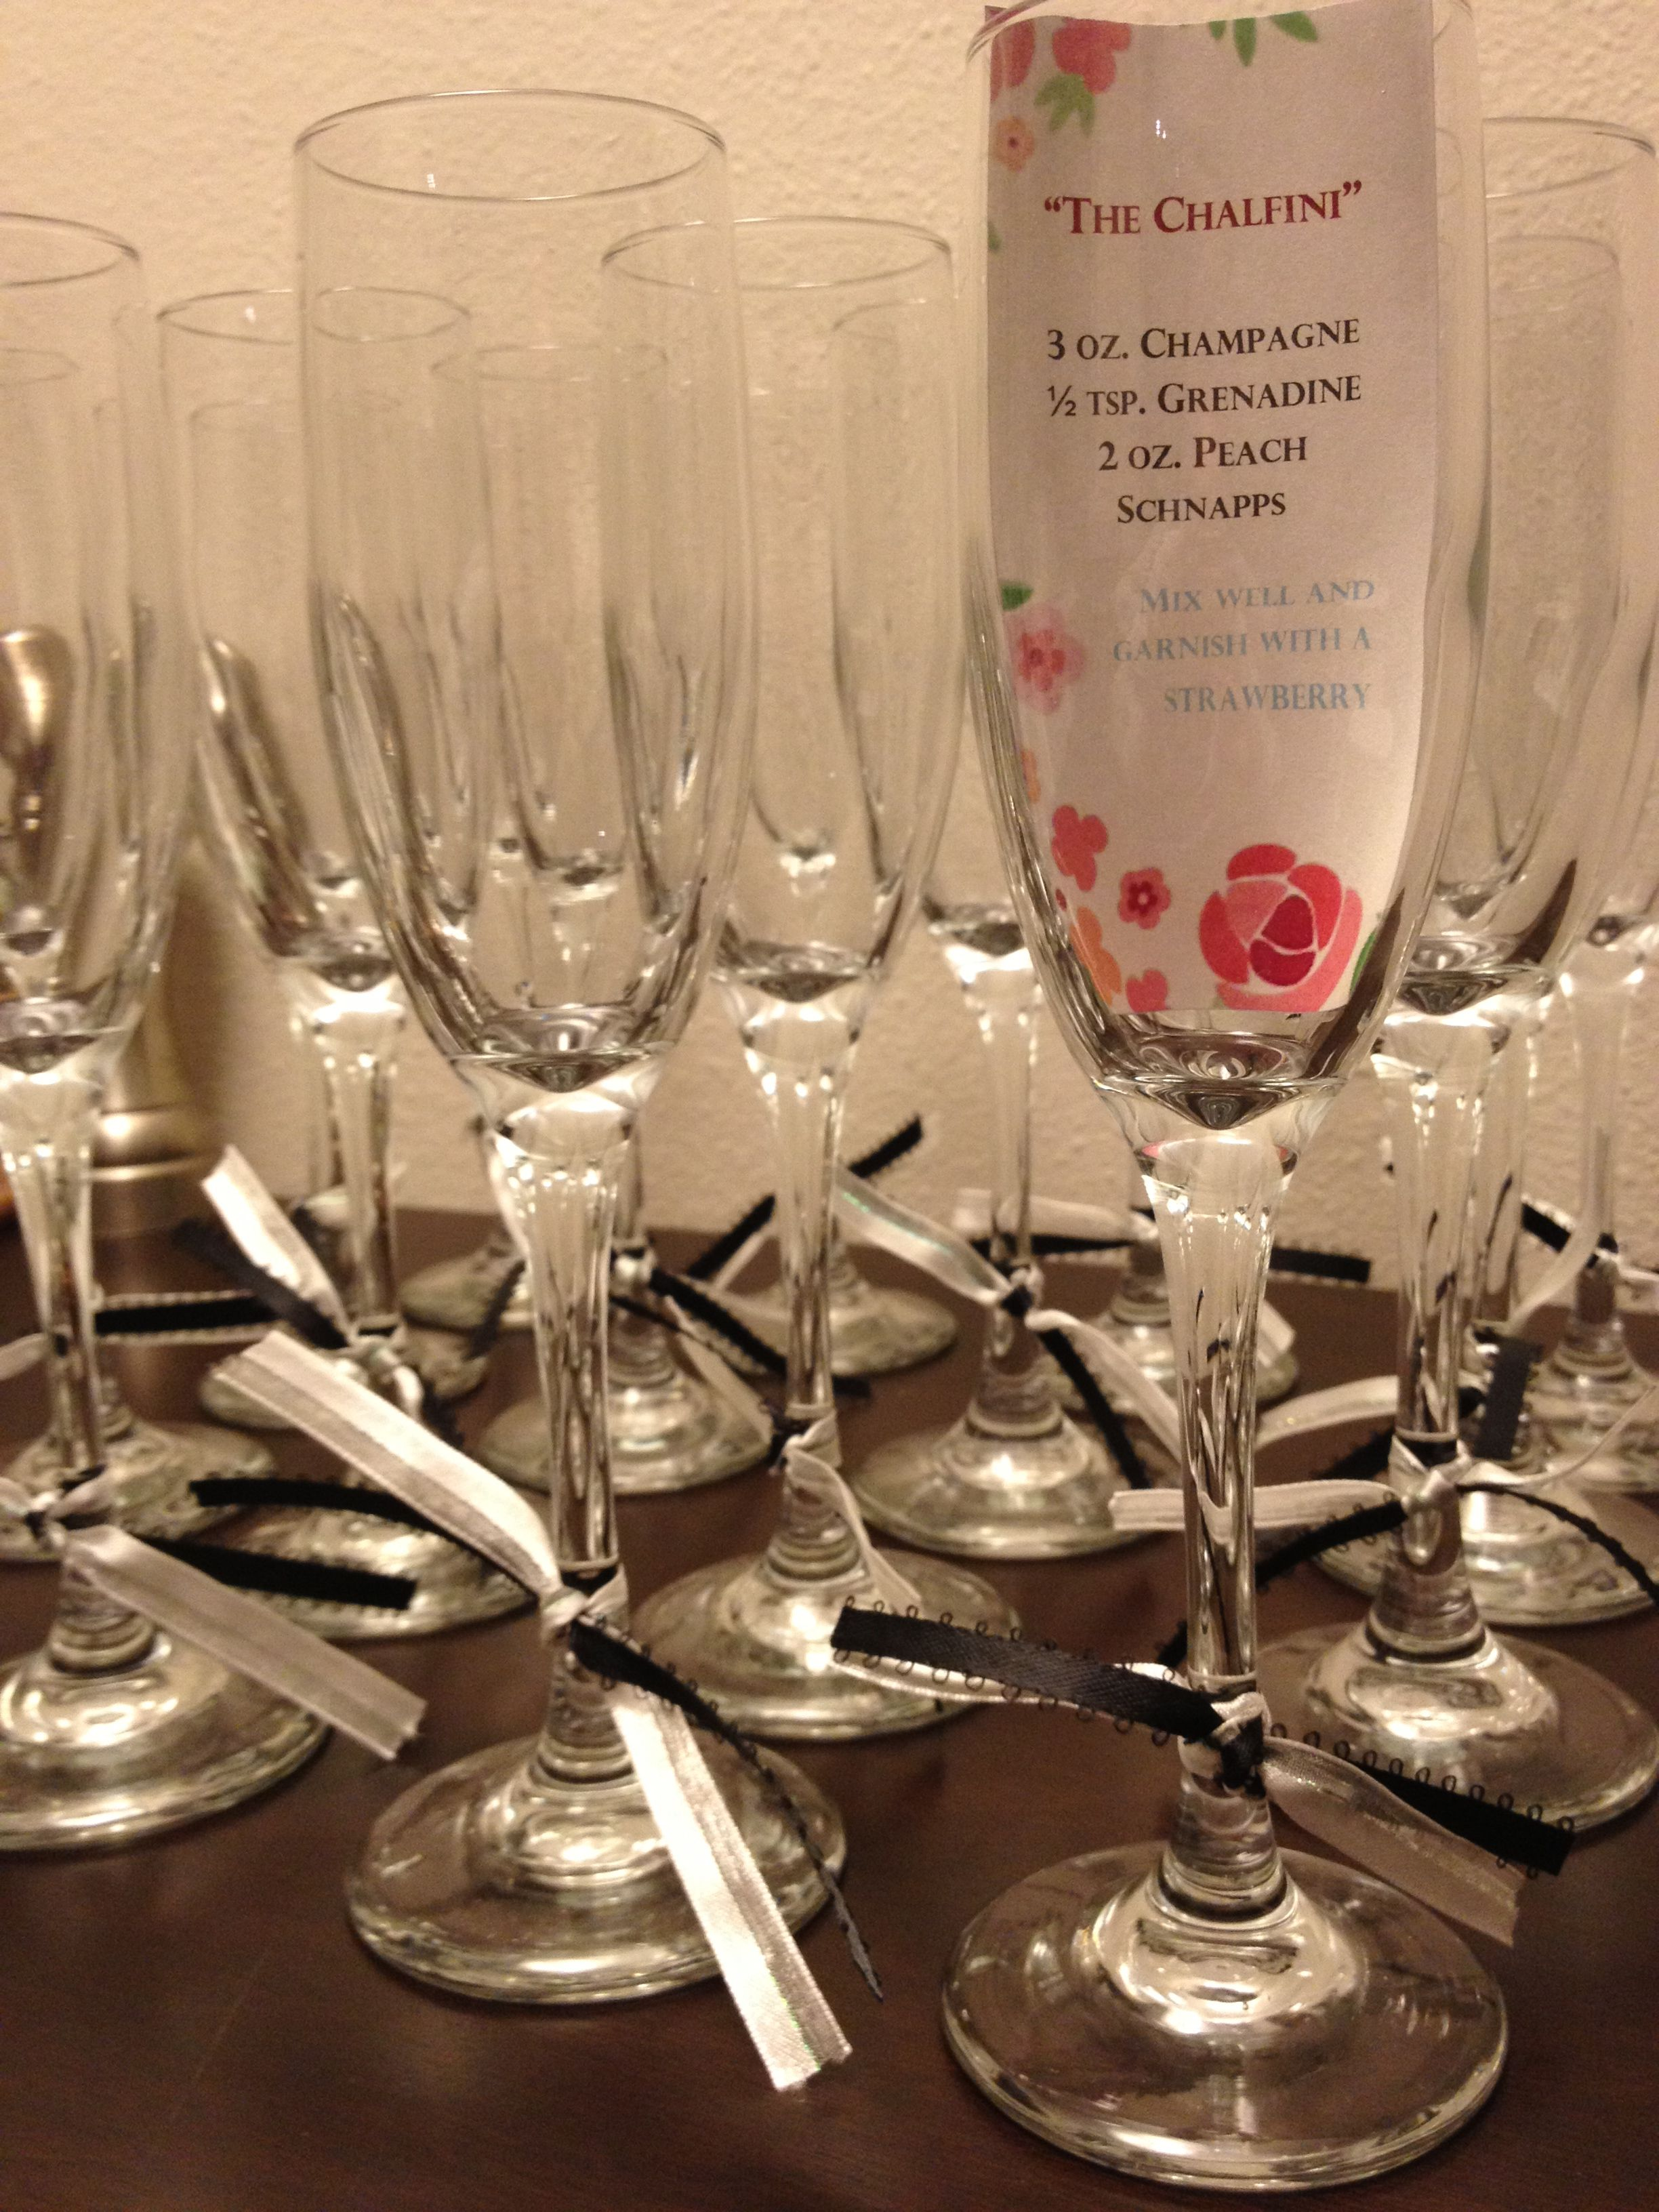 Bridal Shower Favor Champagne Flutes With Specialty Cocktail Recipe Inside Accompany With Tiny Bottles Of Prosecco Verjaardagsfeest Decoratie Decoratie